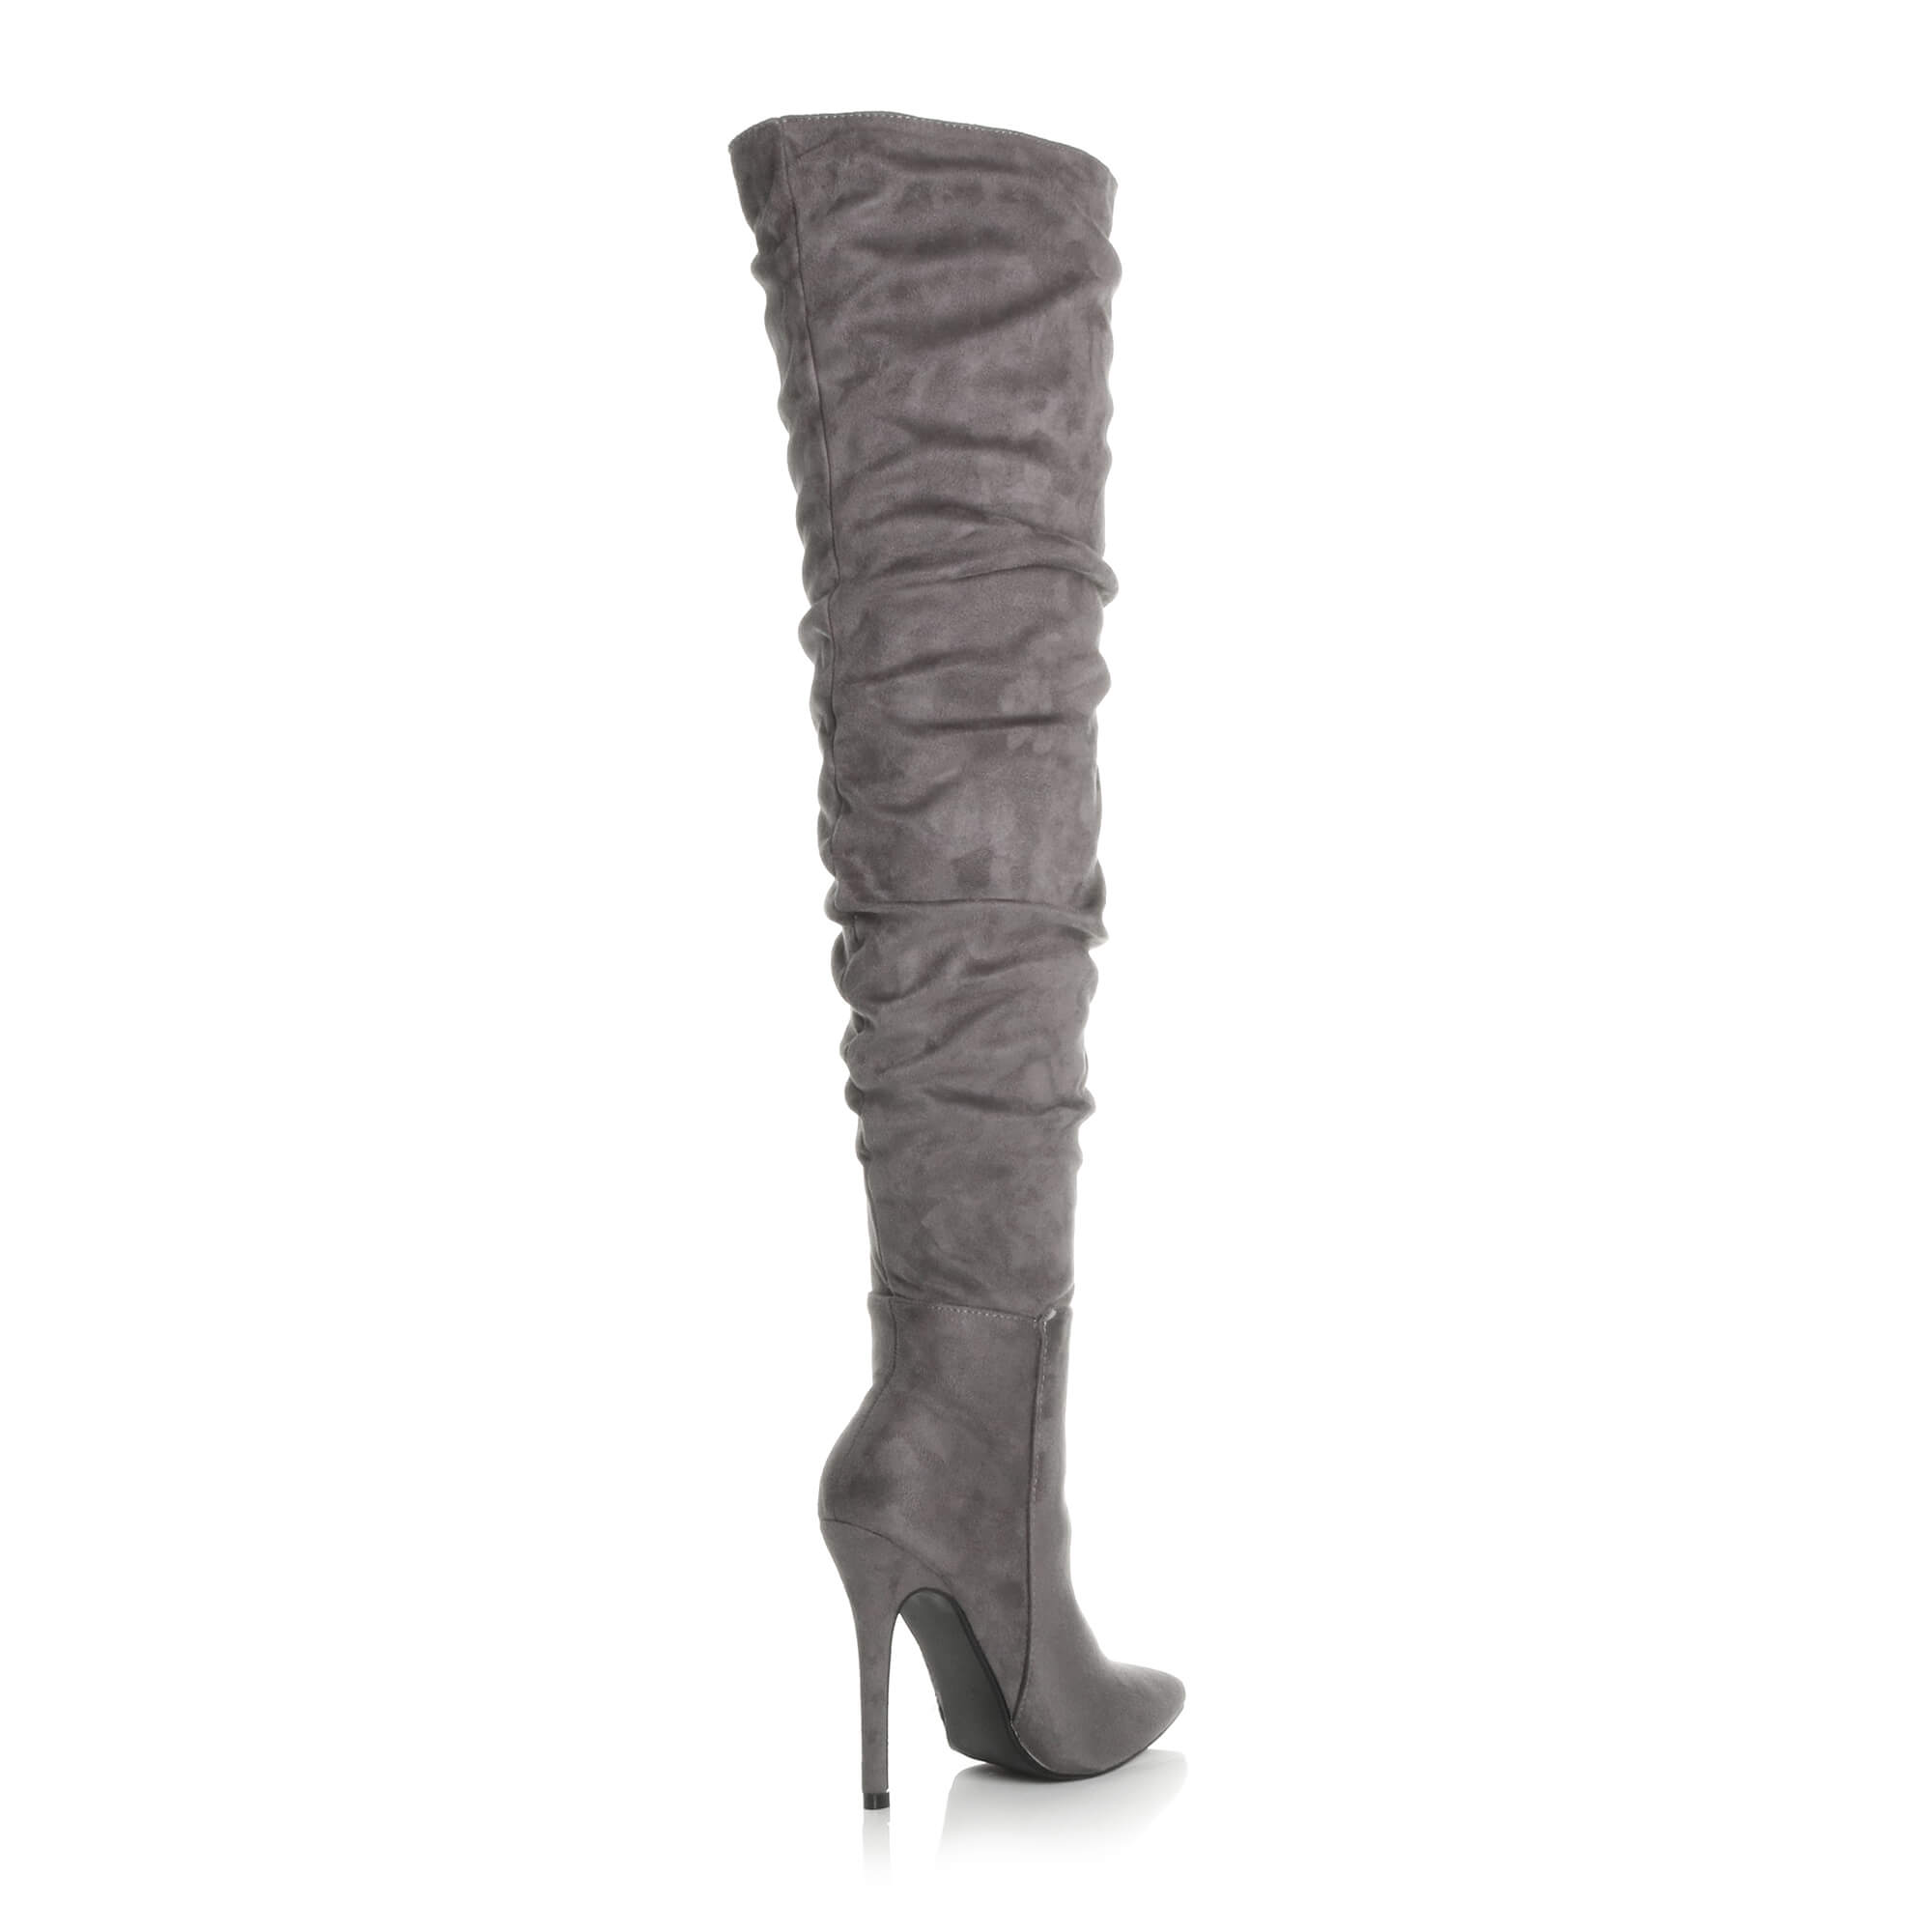 WOMENS-LADIES-SLOUCH-RUCHED-OVER-THE-KNEE-POINTED-THIGH-HIGH-HEELED-BOOTS-SIZE thumbnail 11